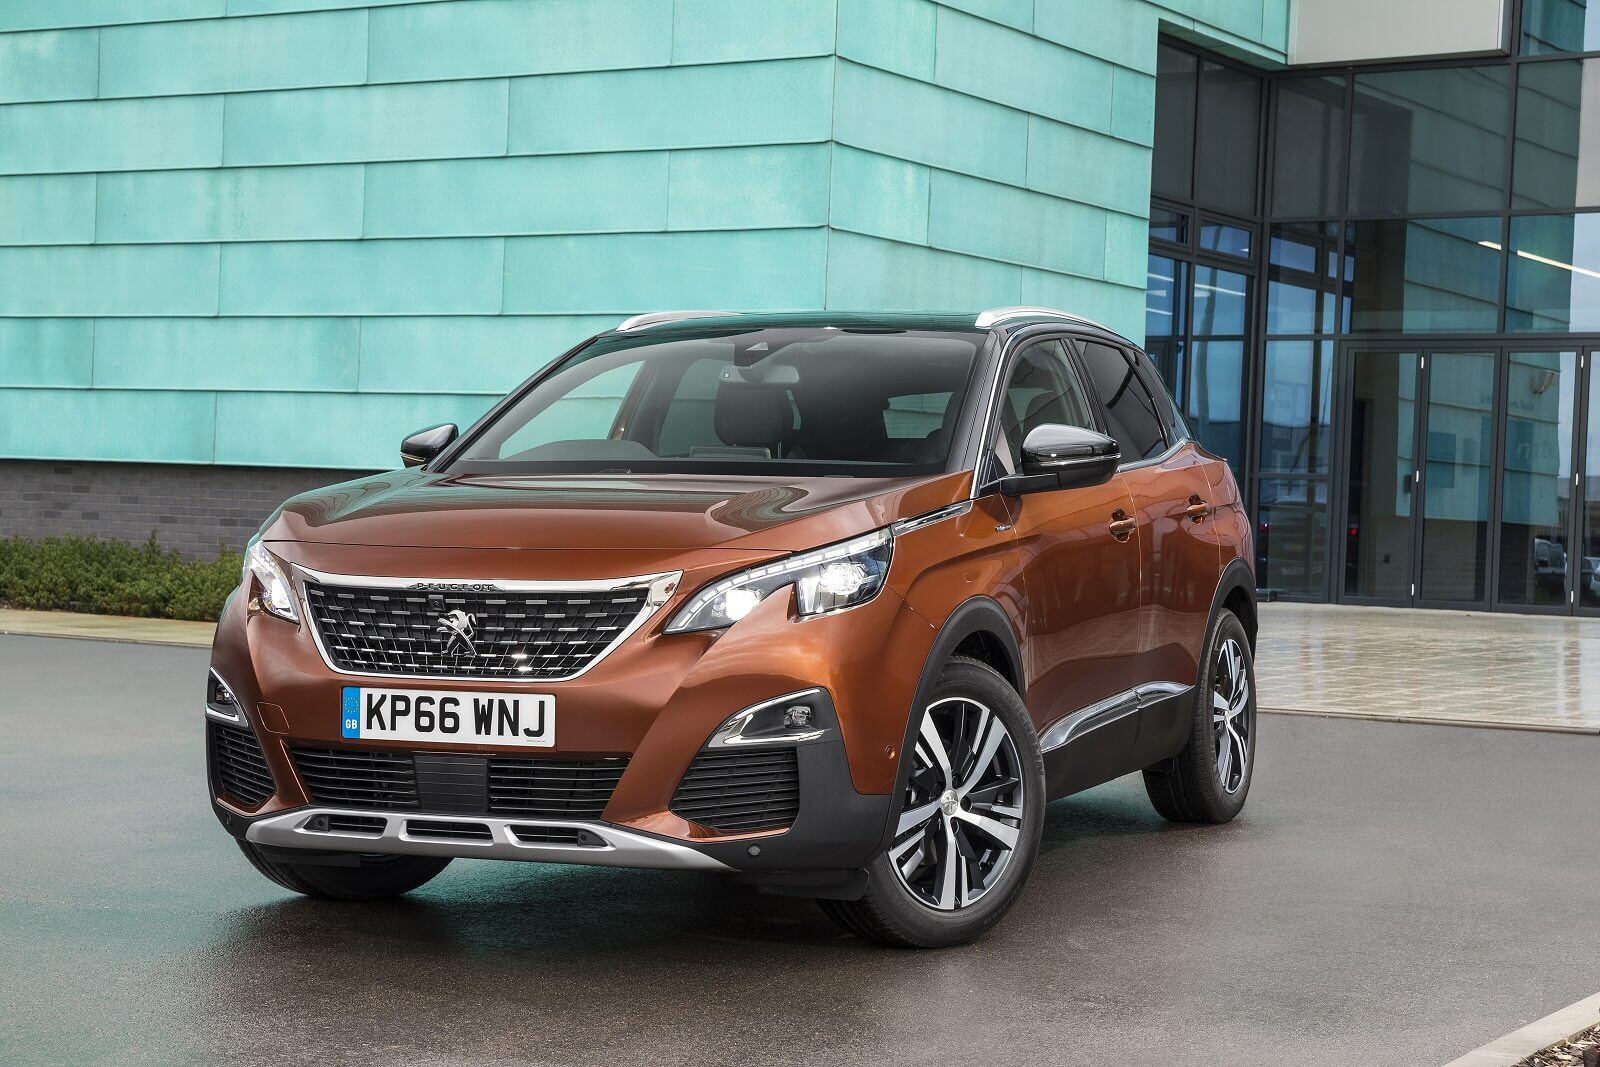 Used Peugeot Estate Cars For Sale